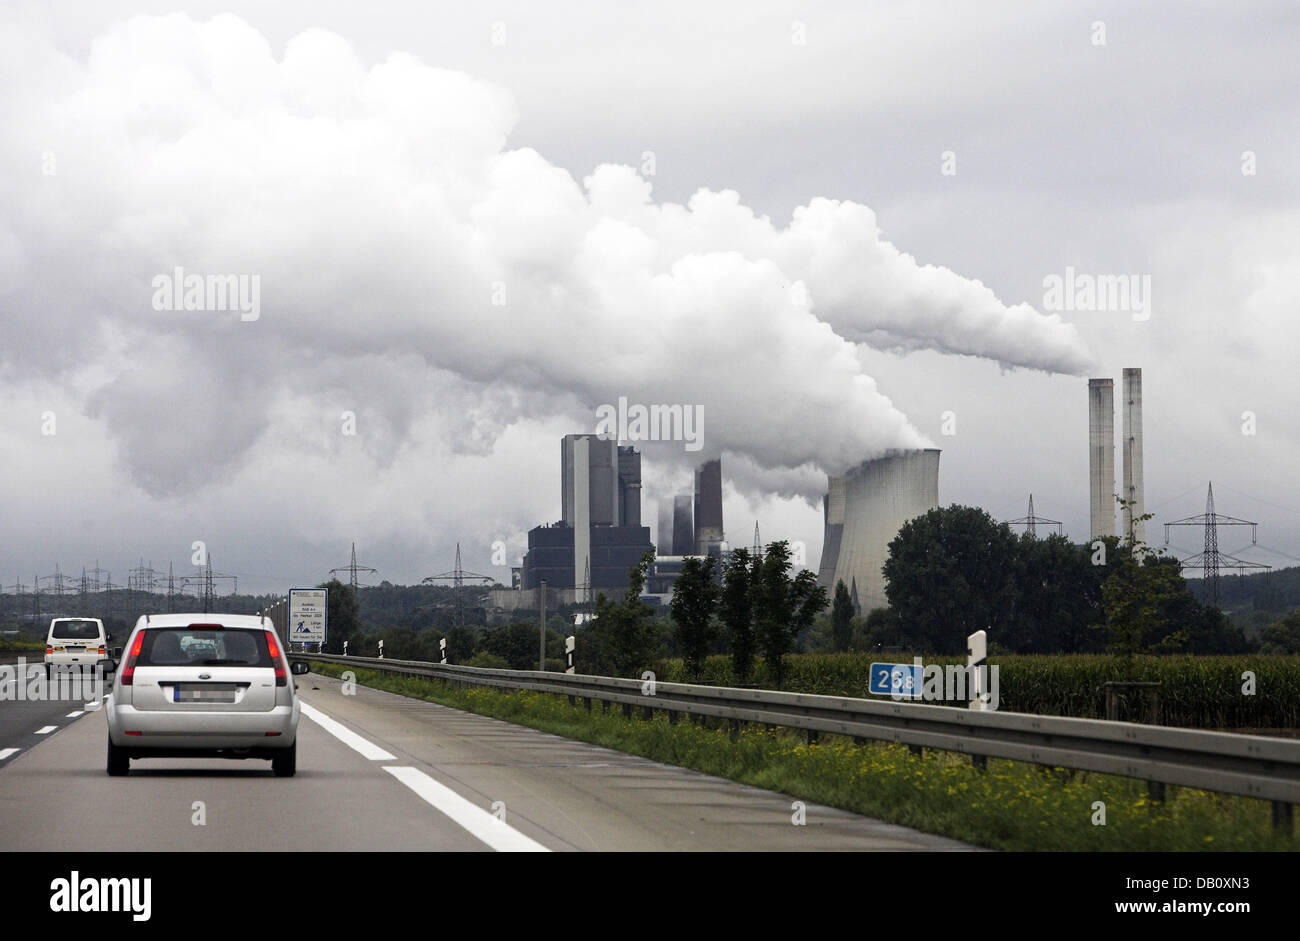 The photo shows RWE's brown coal power plant 'Weisweiler' in Eschweiler, Germany, 7 September 2007. According to Stock Photo